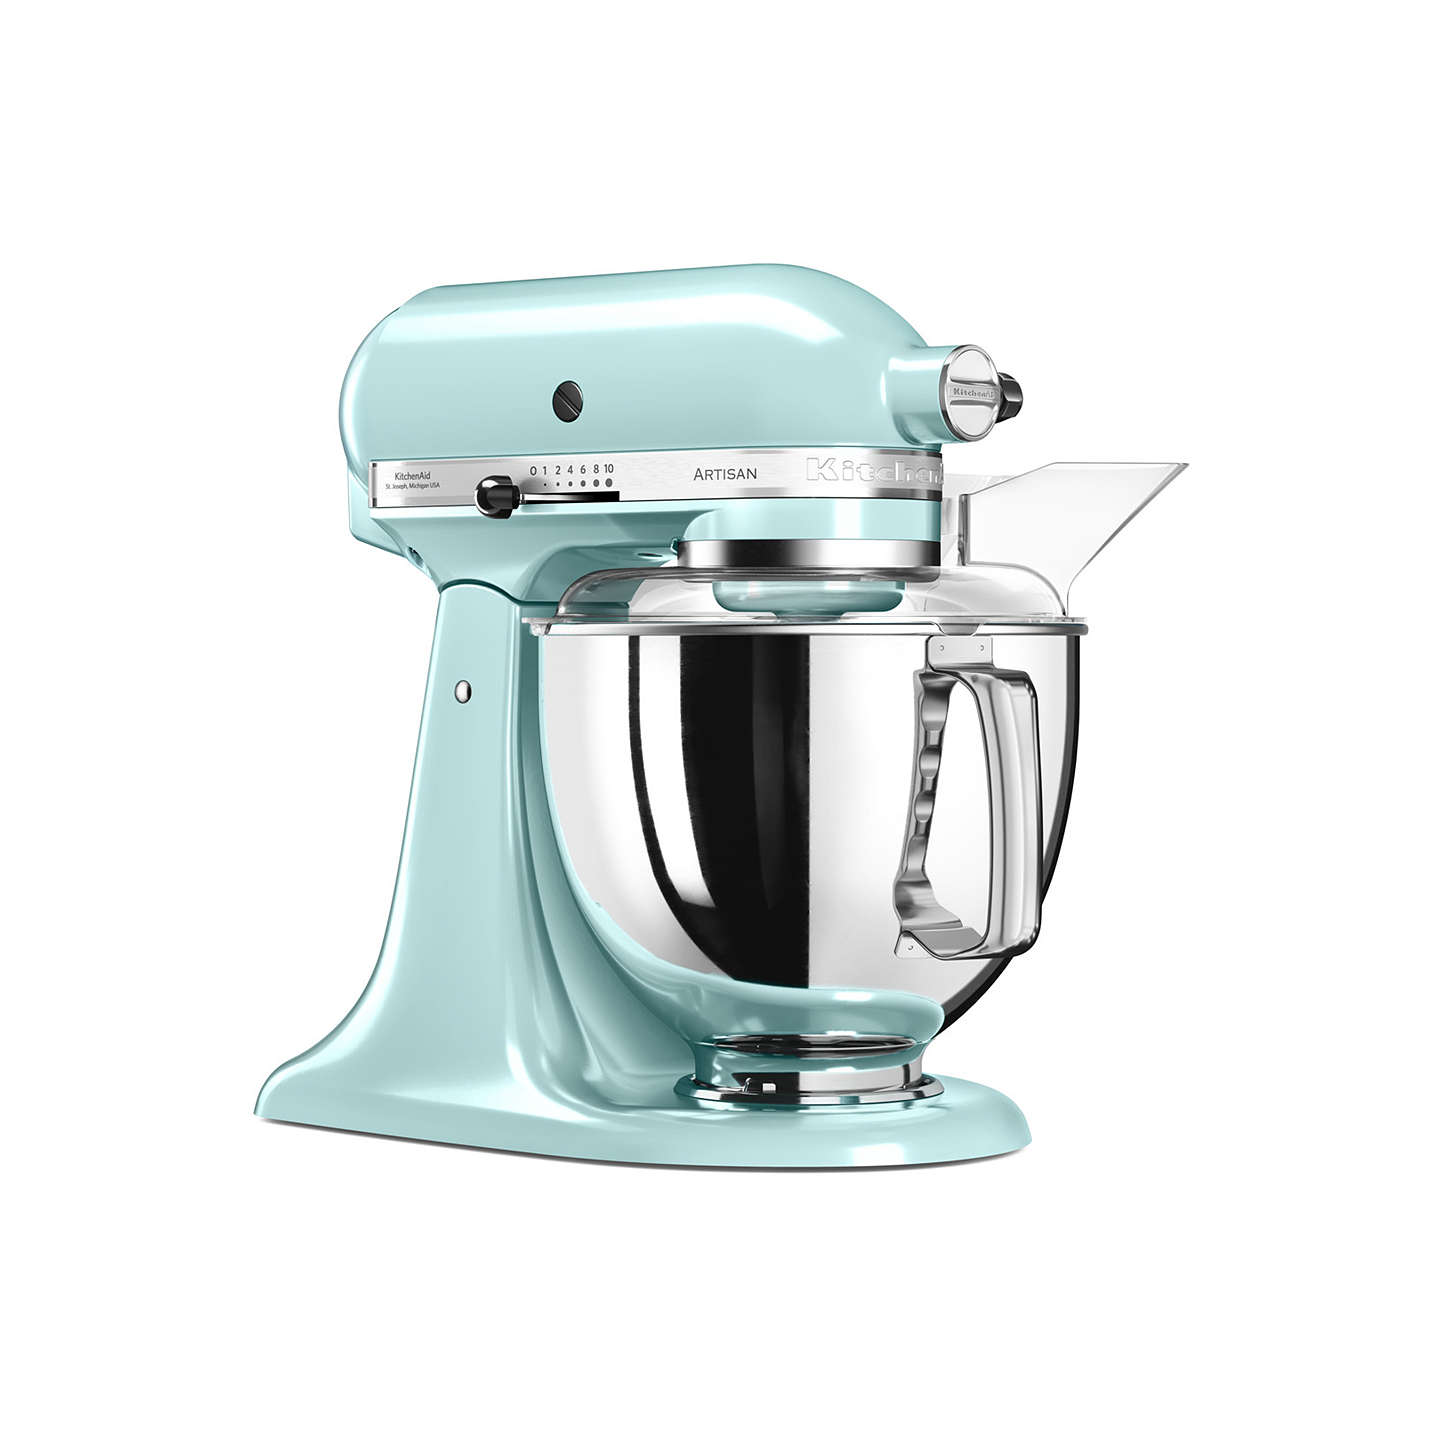 john lewis kitchen accessories kitchenaid 175 artisan 4 8l stand mixer at lewis 4907